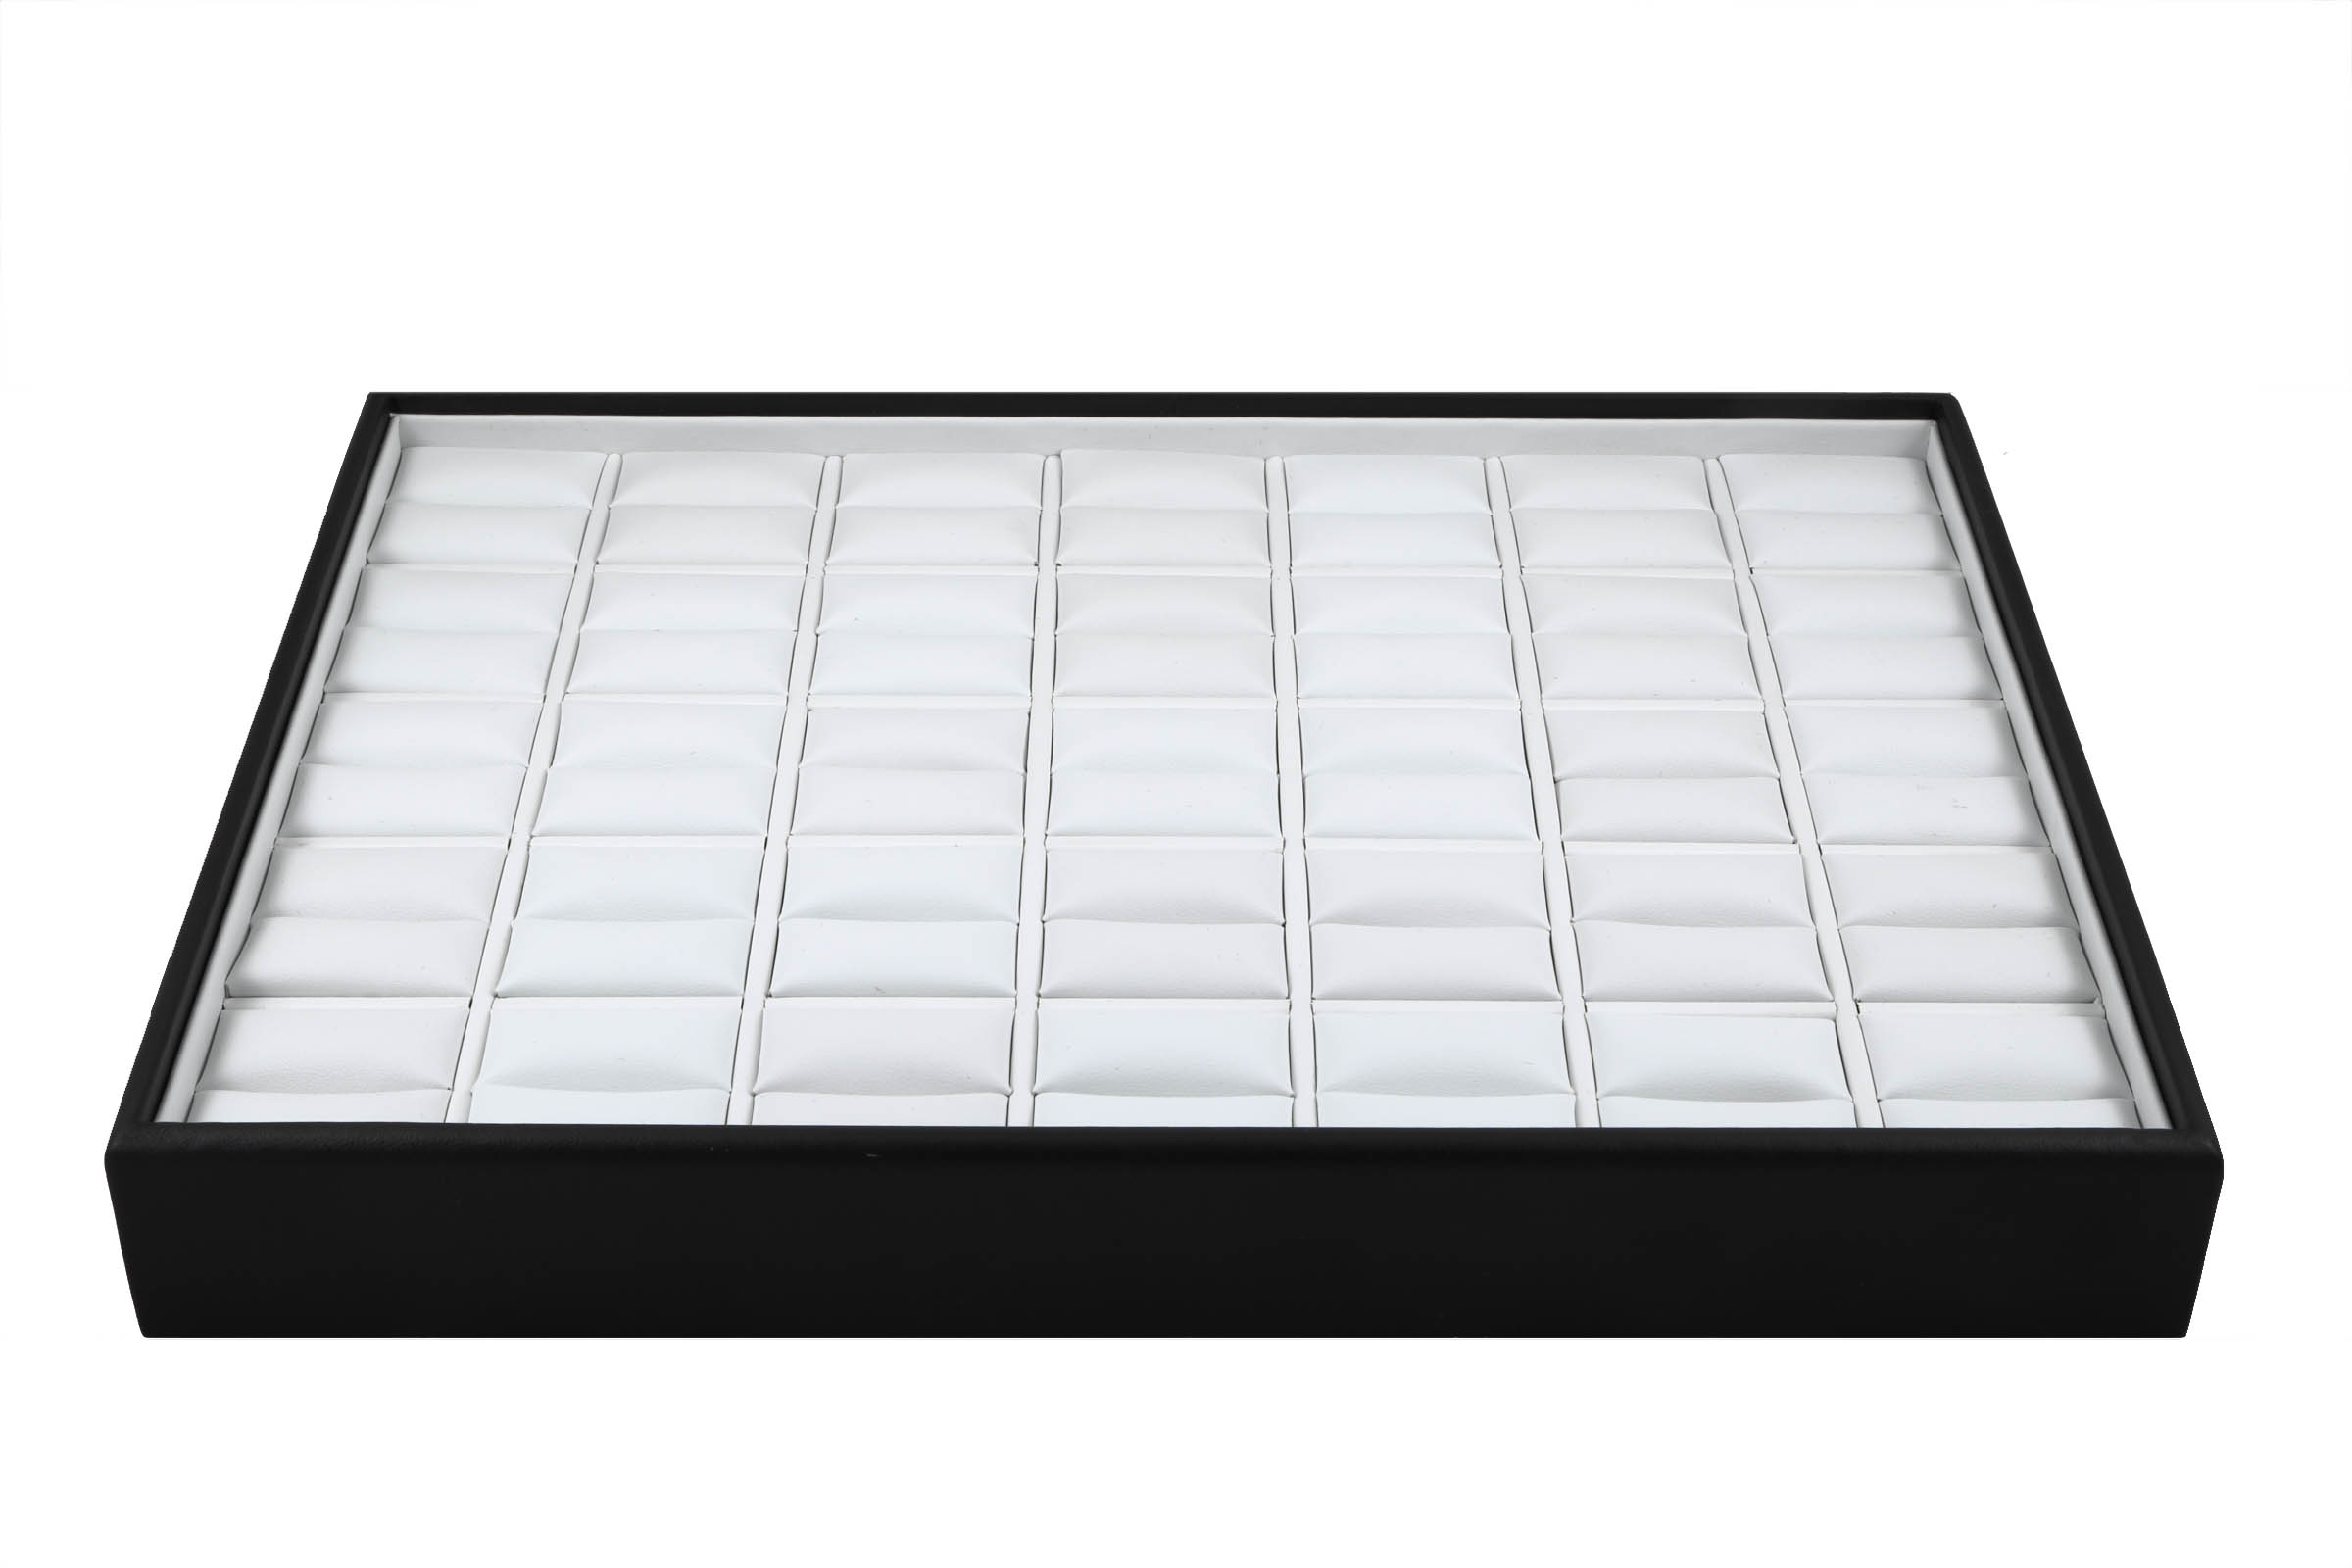 1 x Black and White Premium Soft Padded Leatherette Ring Display Tray. Stackable. Dim 315(w) x 225(d) x 45mm(h).